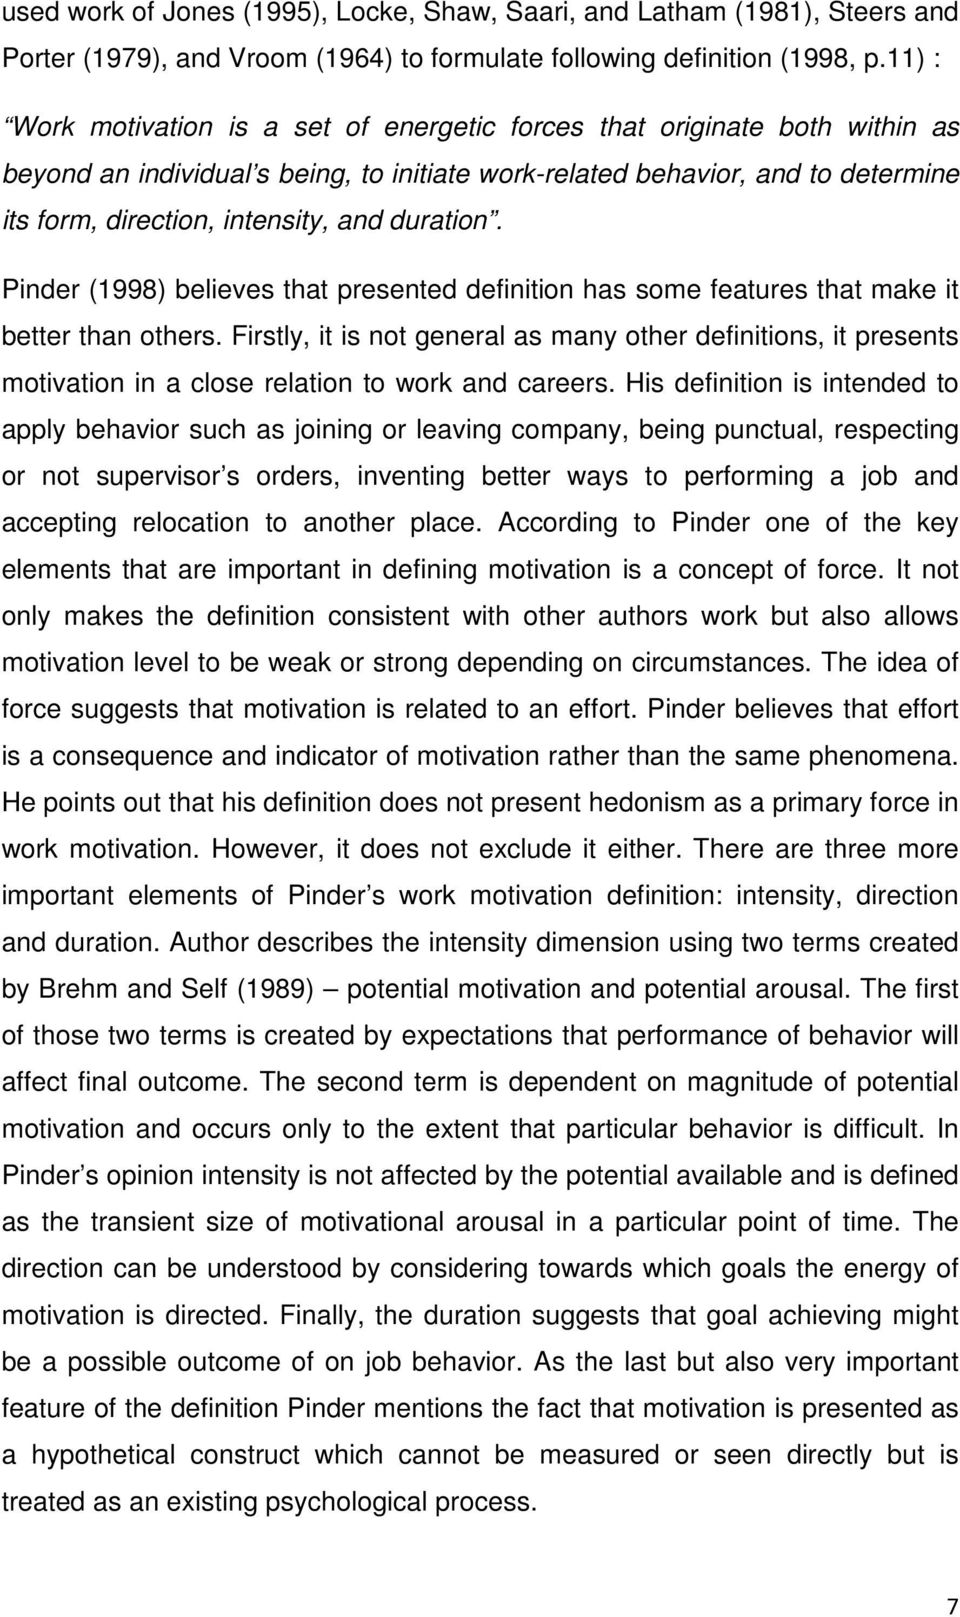 duration. Pinder (1998) believes that presented definition has some features that make it better than others.